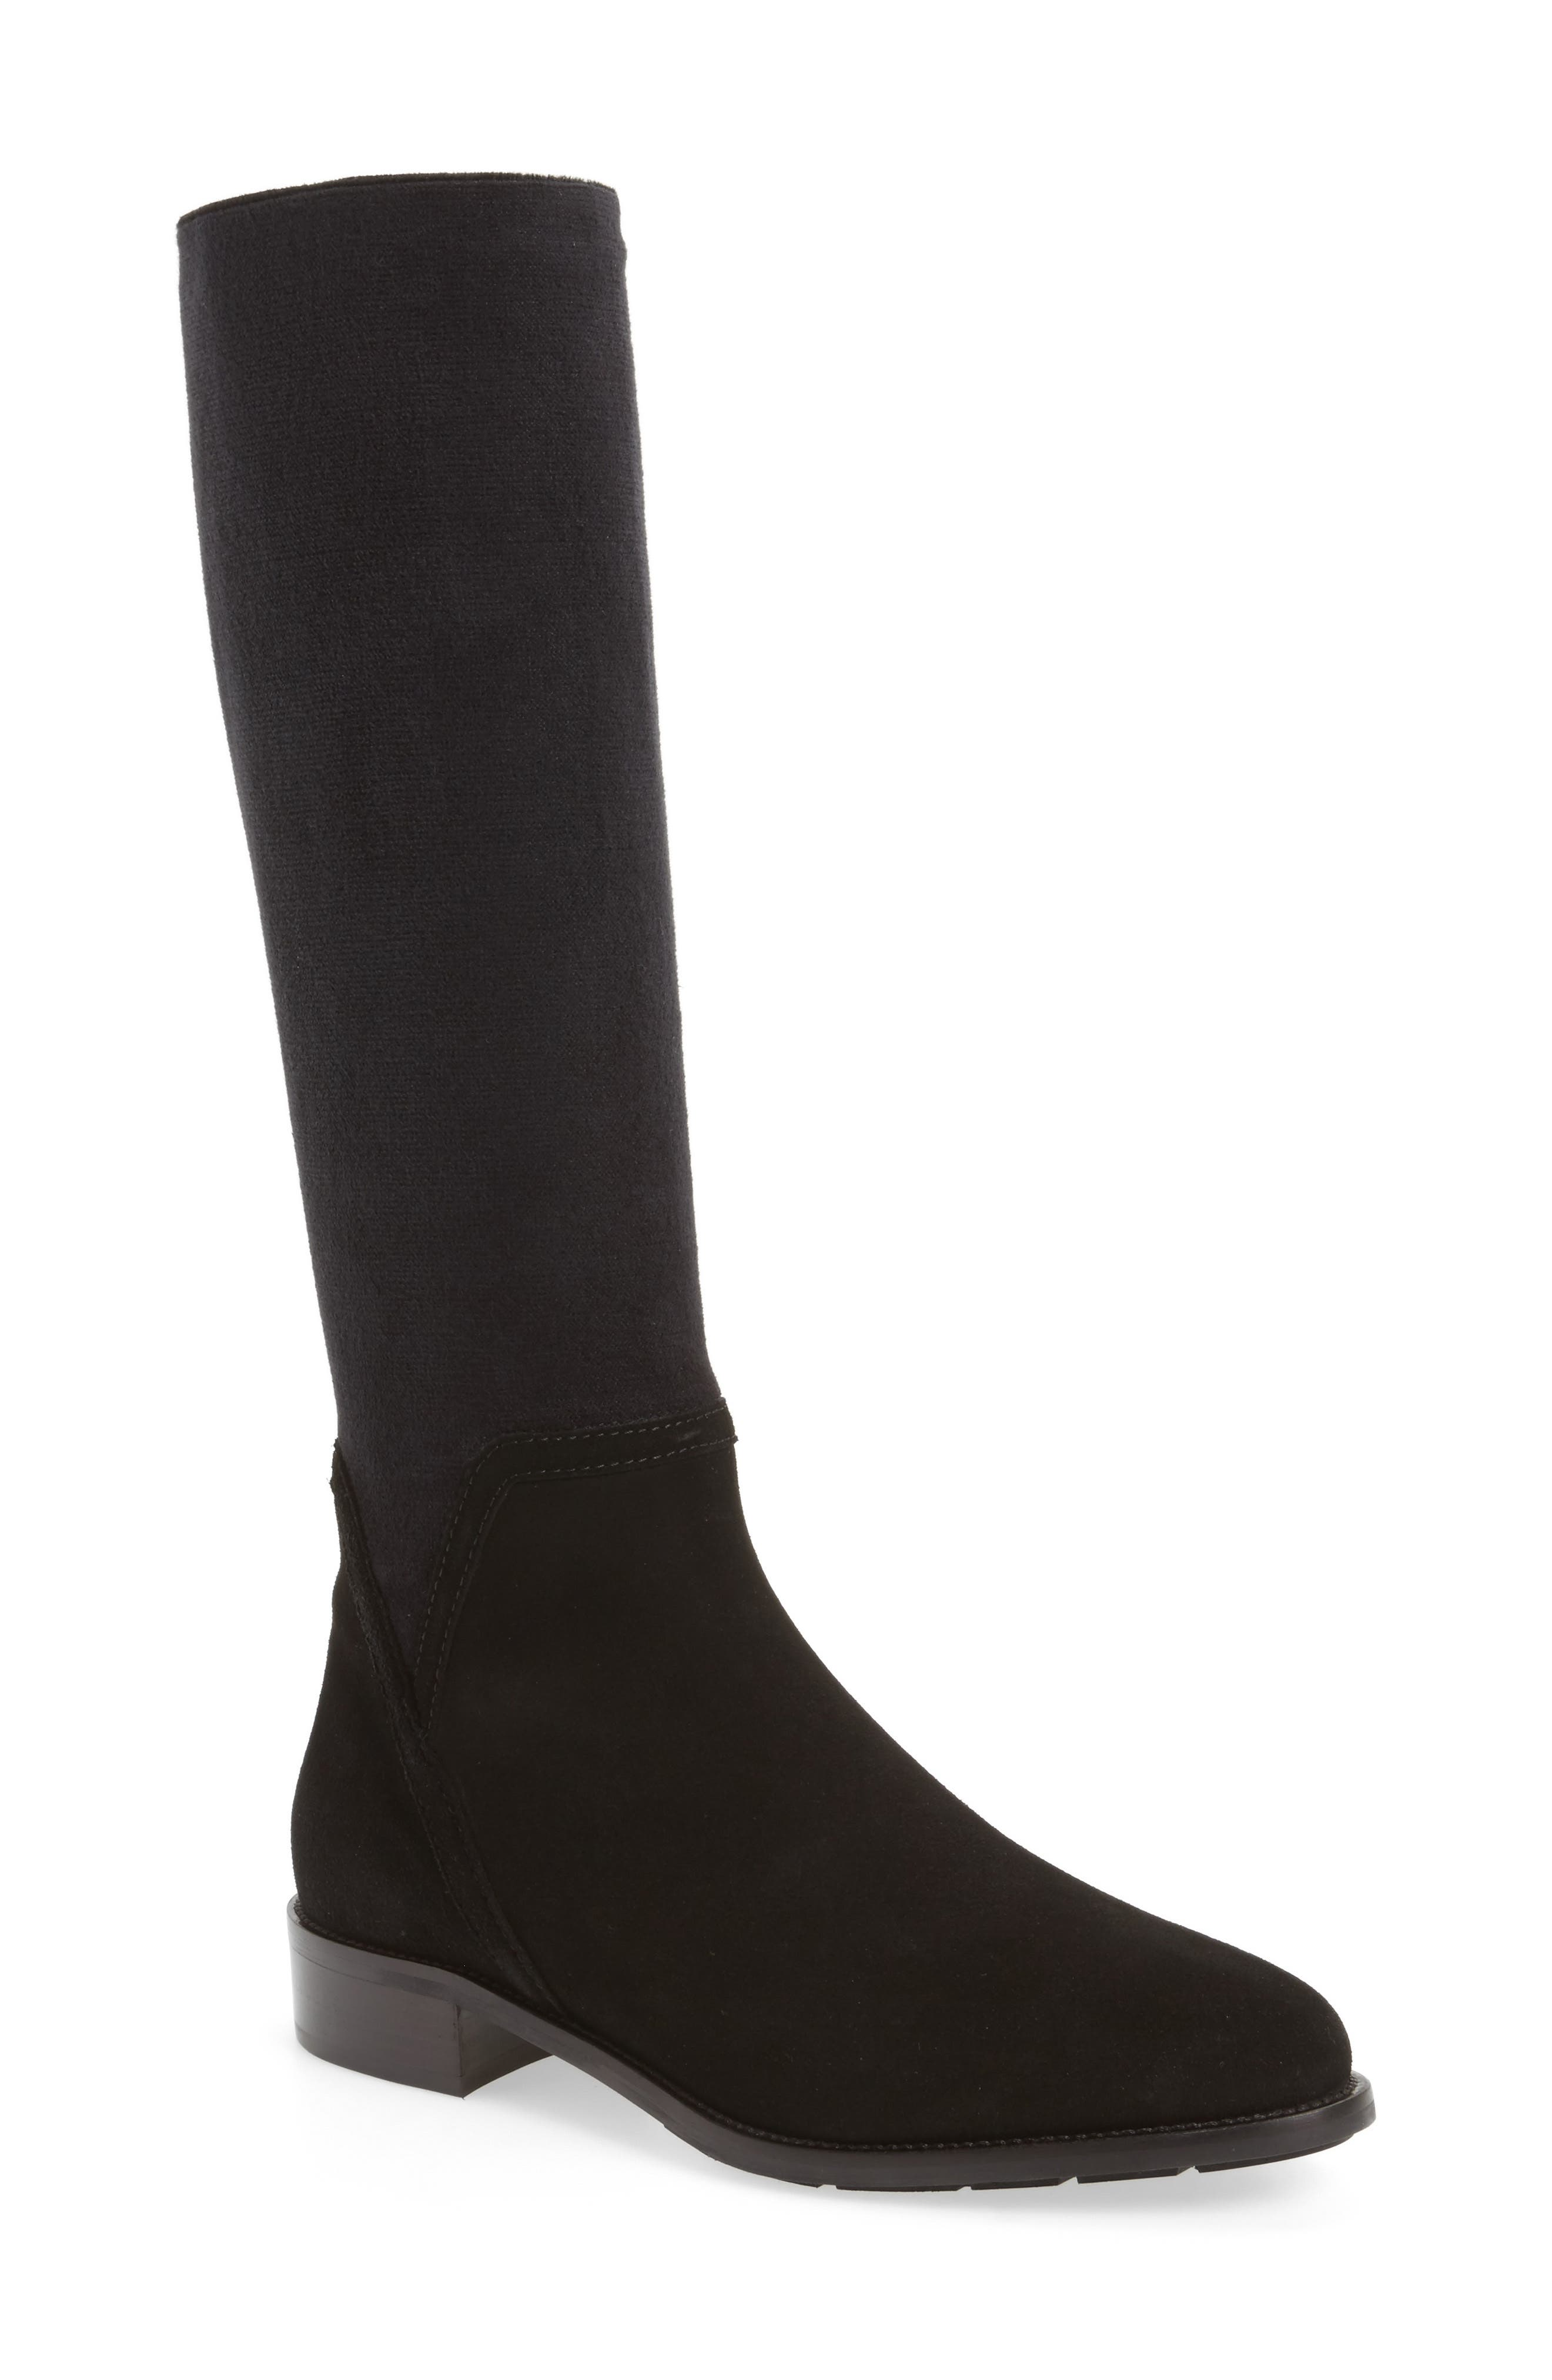 Nicolette Knee High Weatherproof Boot,                         Main,                         color, 001